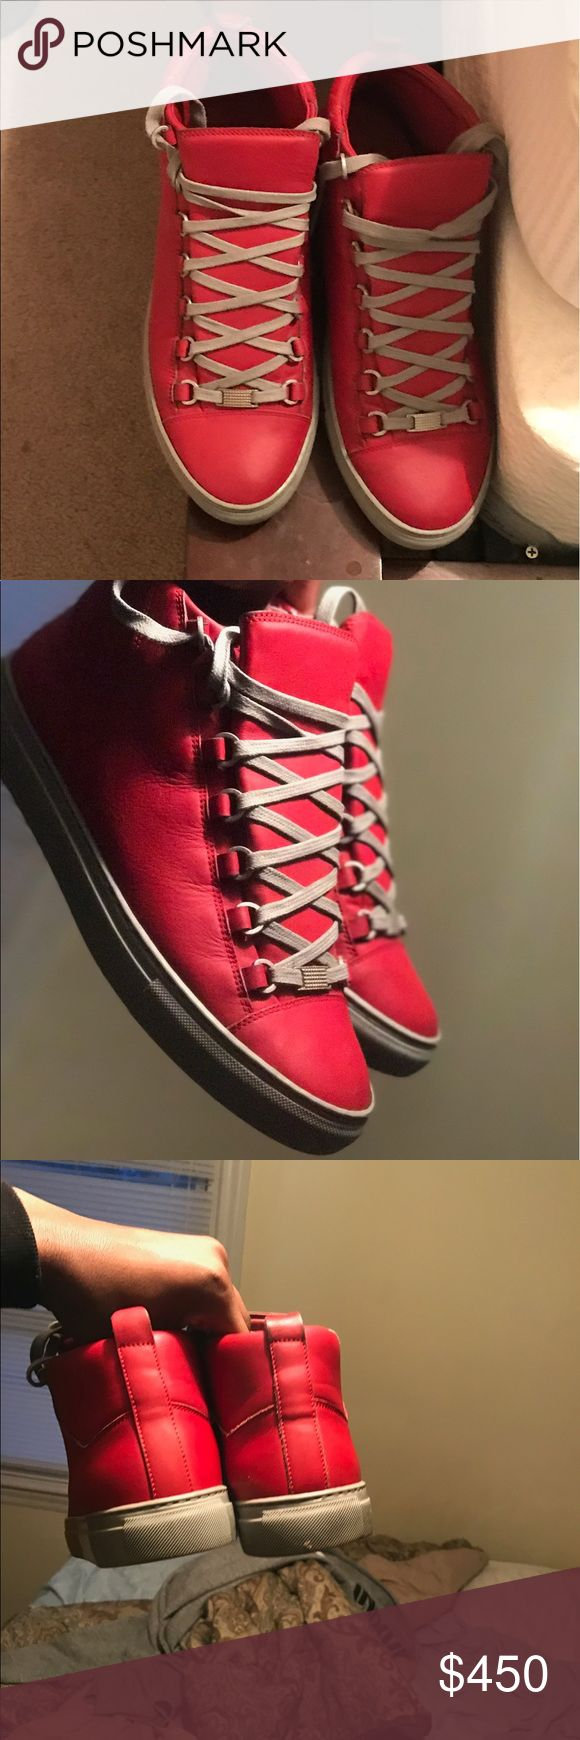 BALENCIAGA ARENA  SNEAKER 100% AUTHENTIC 100% AUTHENTIC BALENCIAGA ARENA HIGH TOP SNEAKER REGULAR PRICE $630-$645 WORN A FEW TIMES I TOOK PLENTY OF PICTURES SO CUSTOMERS CAN SEE THE HOW THEY LOOK UP CLOSE IF ADDITIONAL PICTURES ARE NEEDED JUST MESSAGE ME THESE WERE ONE OF MY FAV PAIR OF SNEAKERS SO ITS HARD LETTING GO LOL Balenciaga Shoes Sneakers